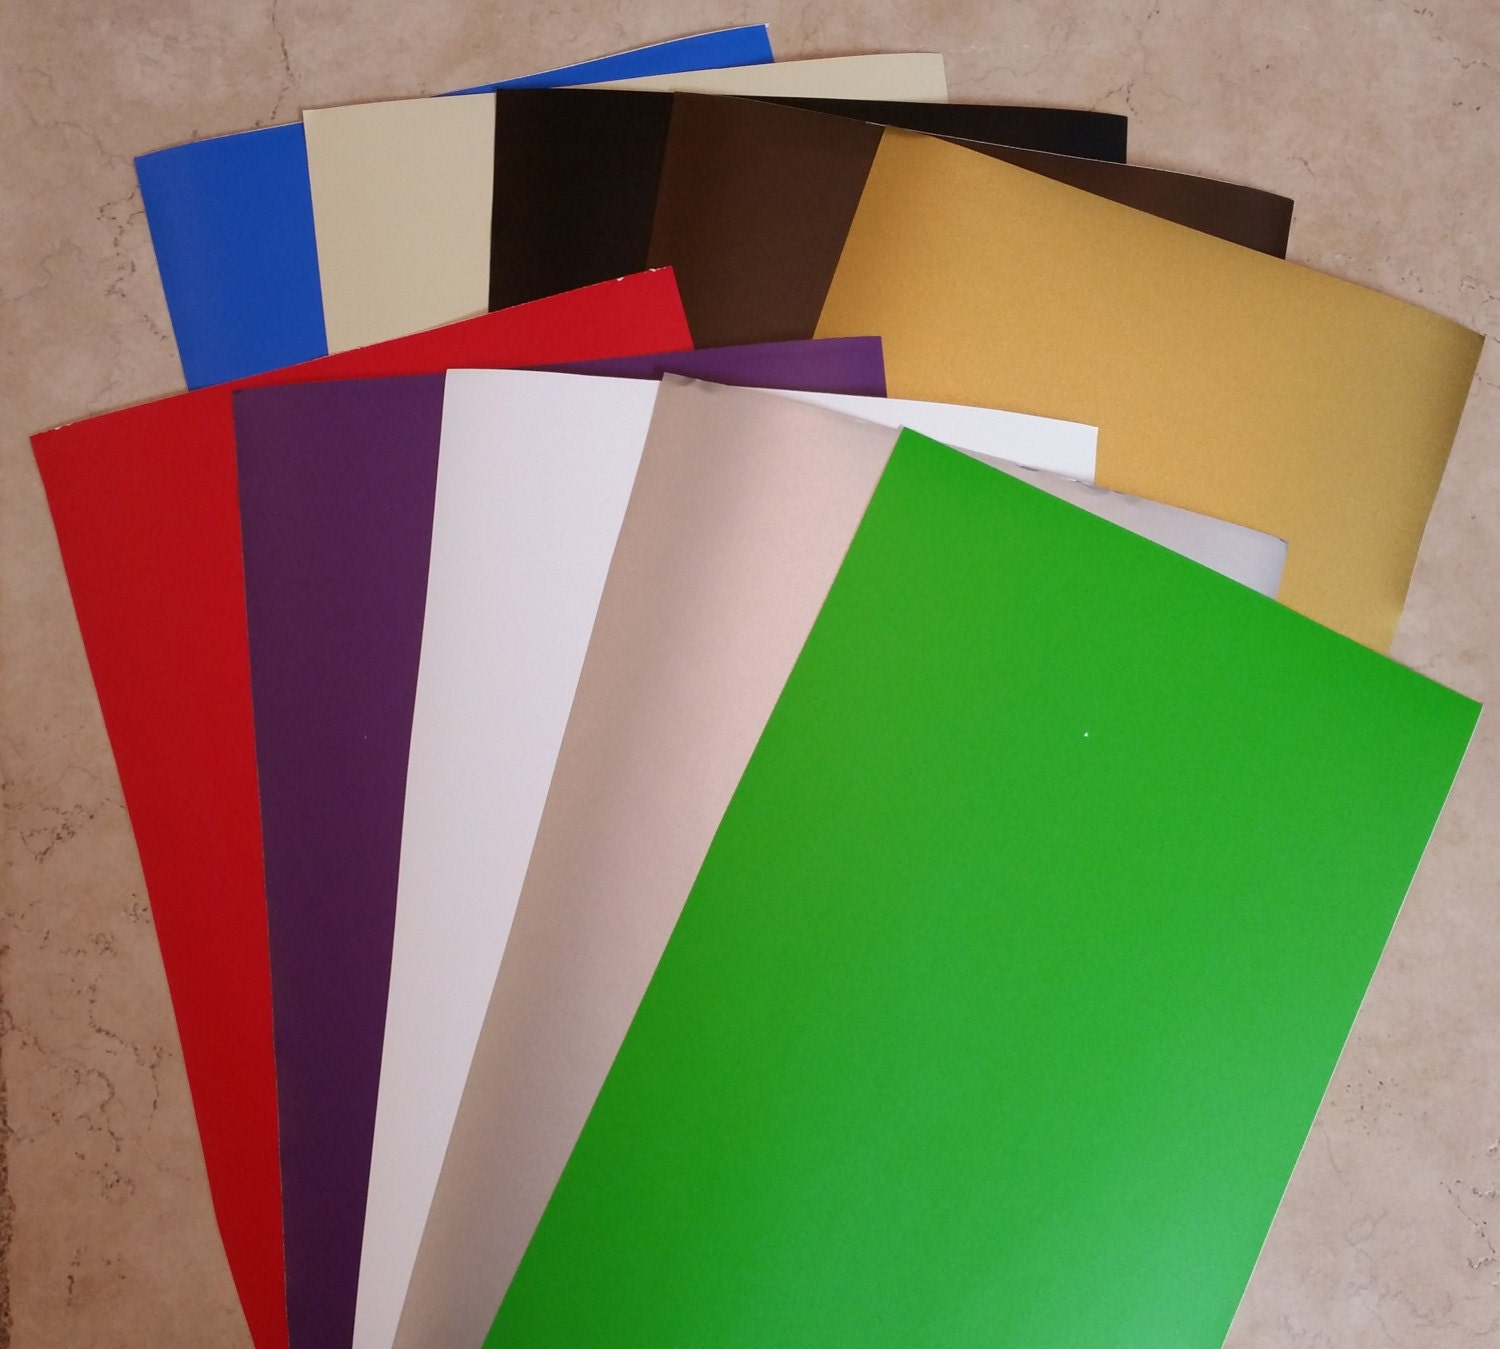 10 Sheets 12x24 Adhesive Vinyl For Your Cricut Expression